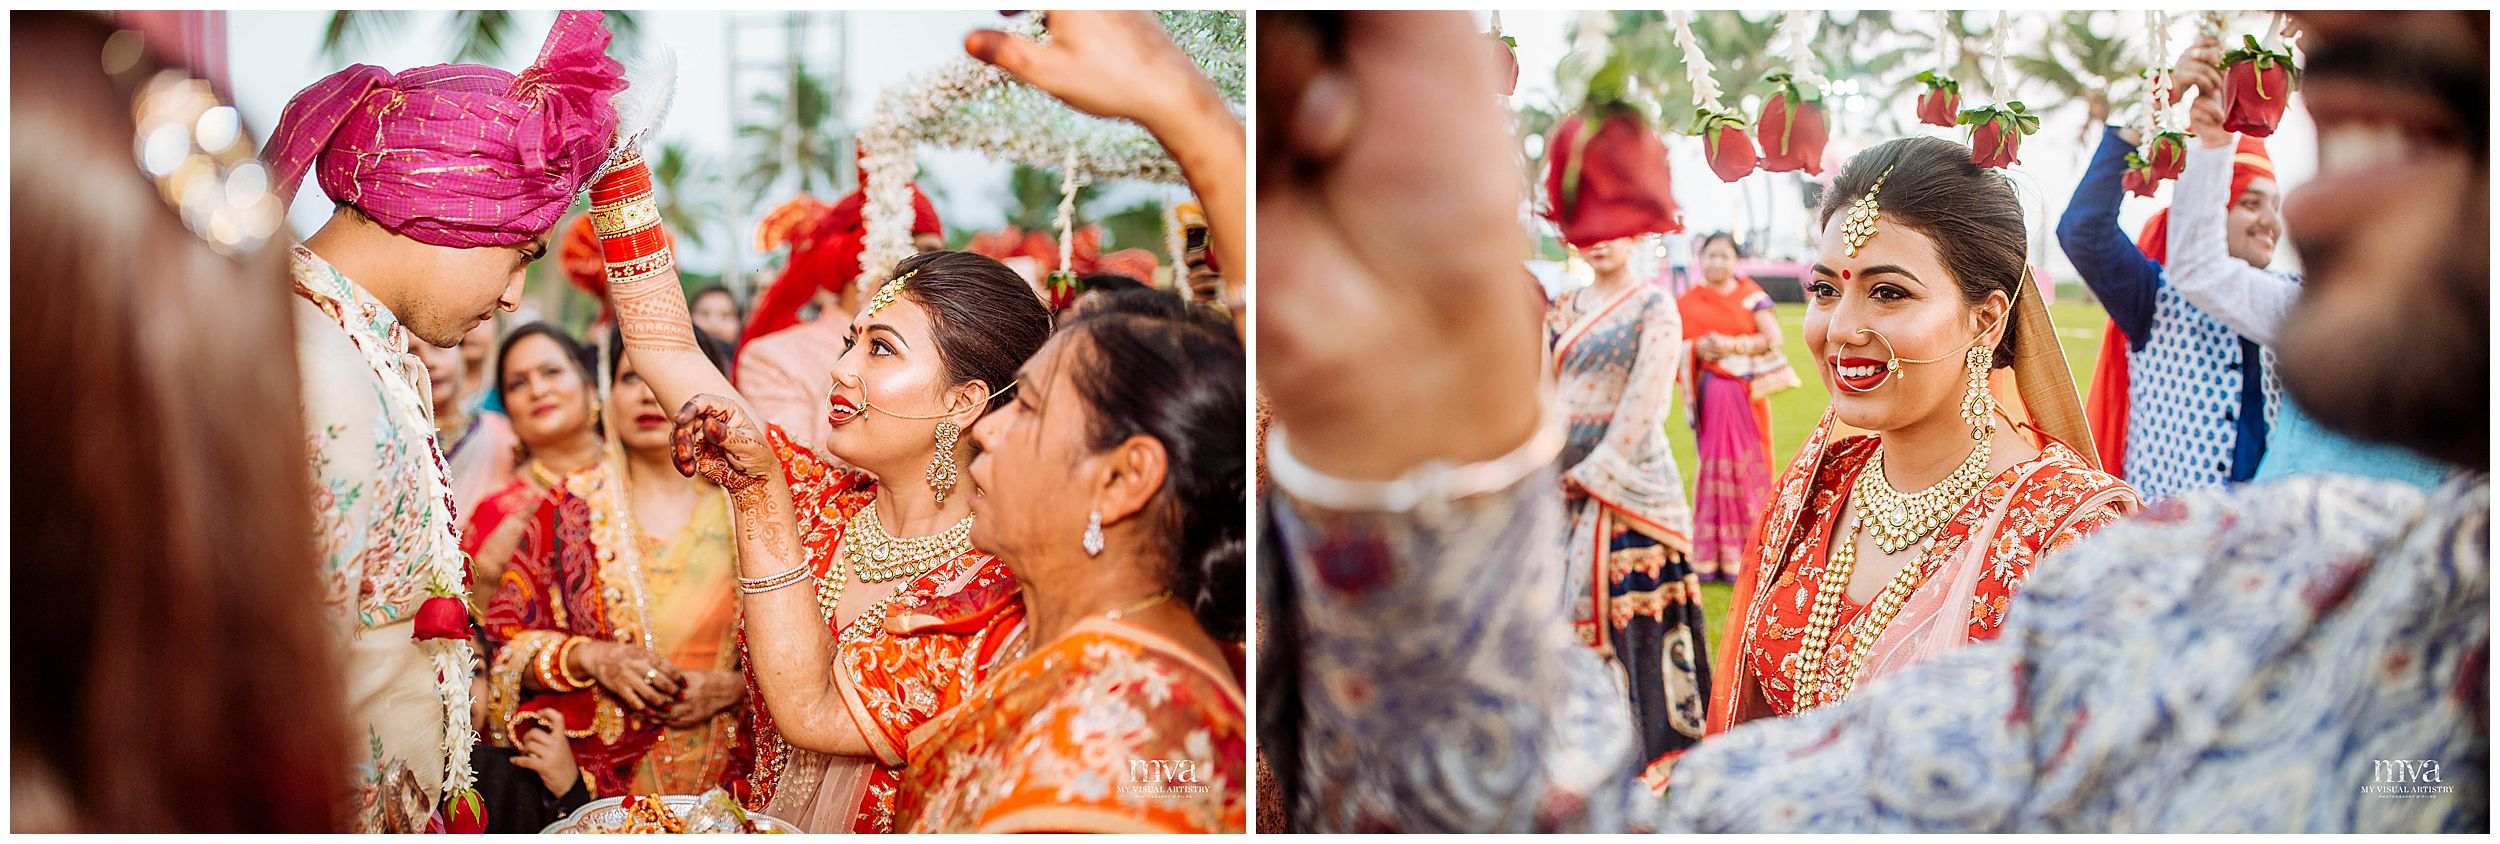 ROHIT_SANIYA_MYVISUALARTISTRY__WEDDING_PHOTOGRAPHER_GOA_DESTINATION_CAREVELA_RESORT_0020.jpg